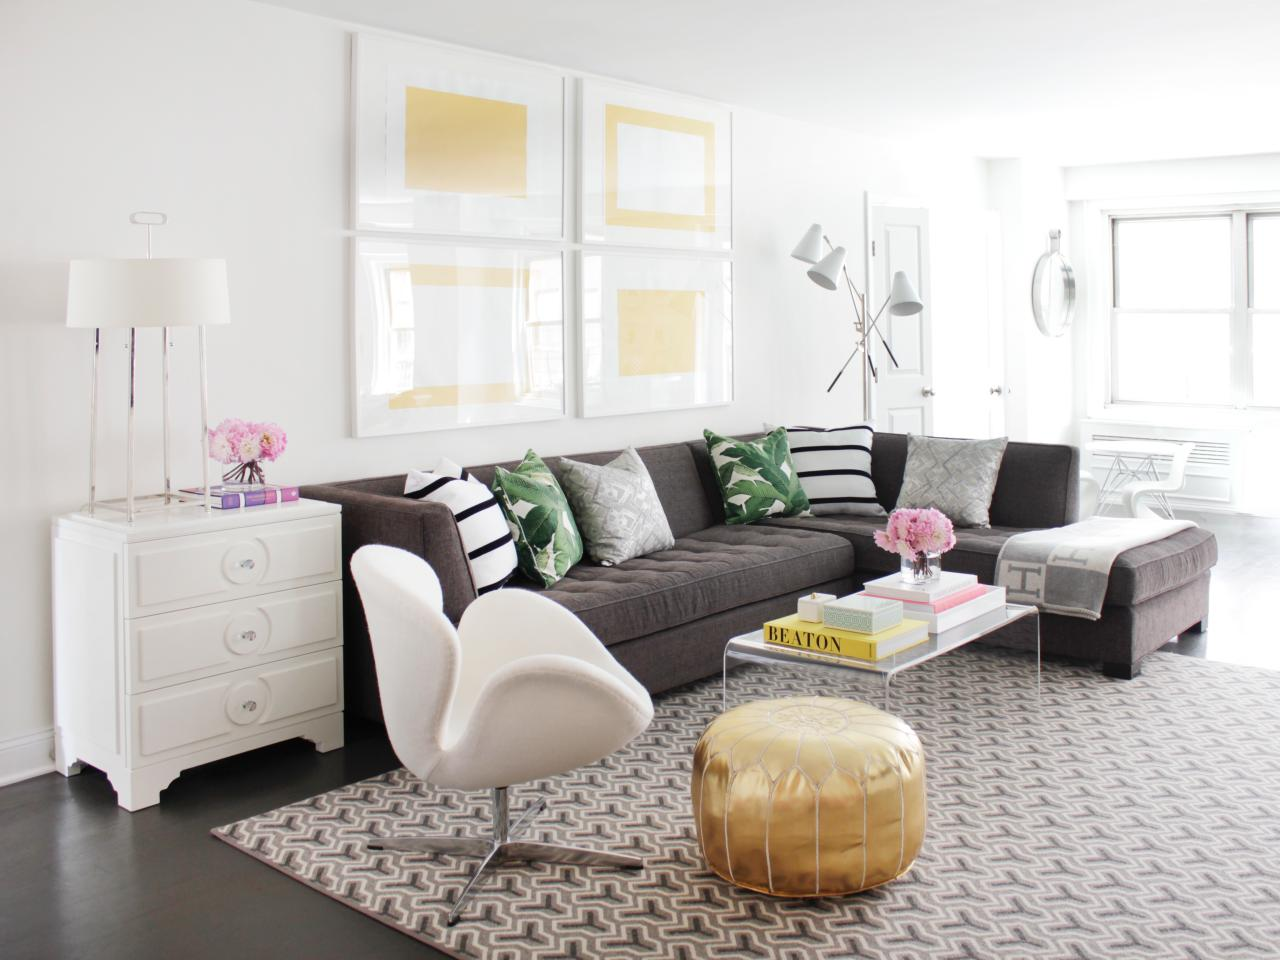 12 Living Room Ideas for a Grey Sectional | HGTV\'s Decorating ...